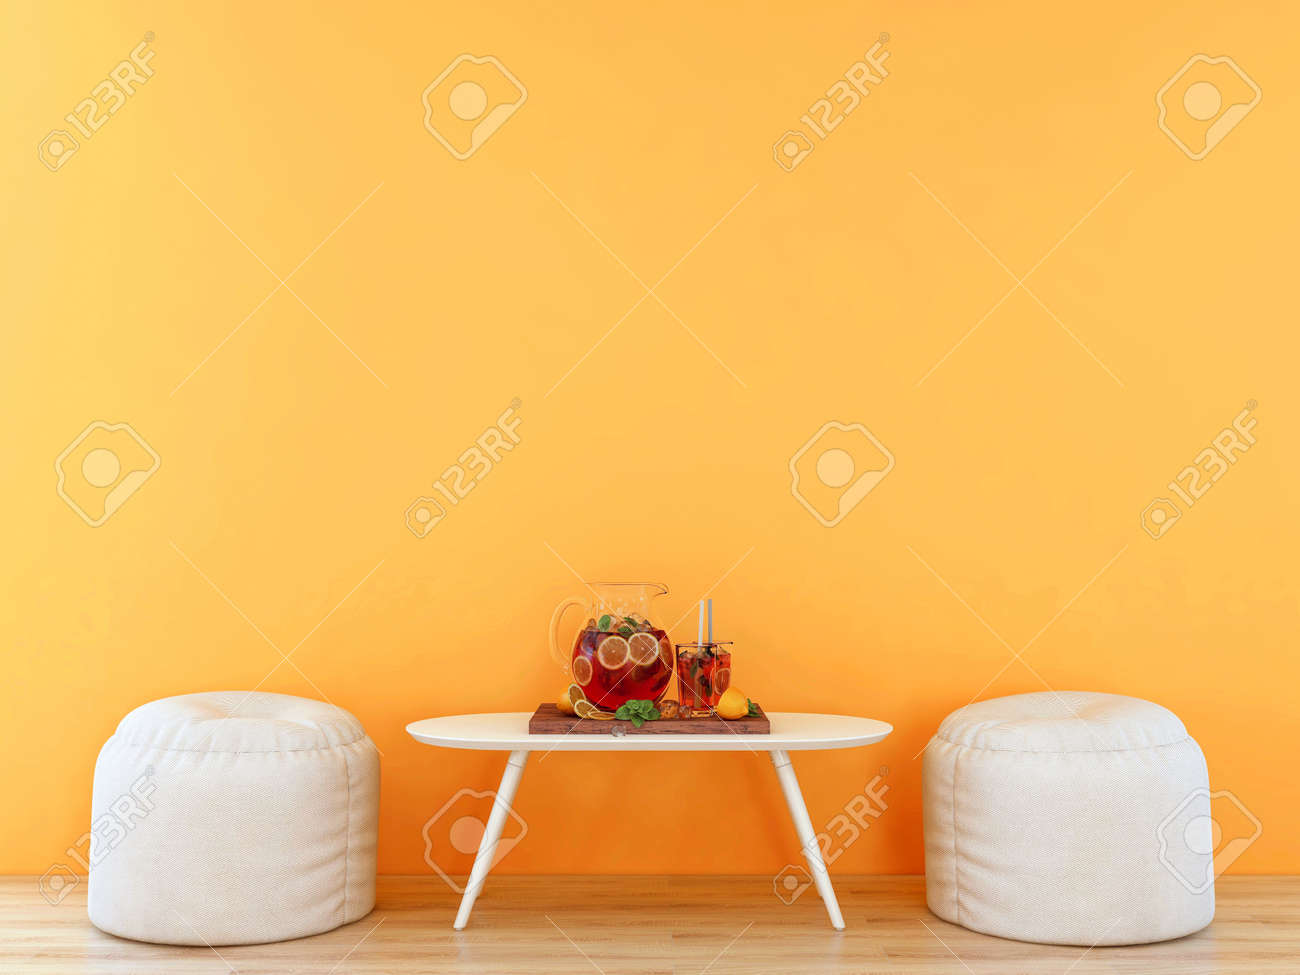 Room interior with empty orange wall with white furniture and infused water set, 3D Rendering - 150916161